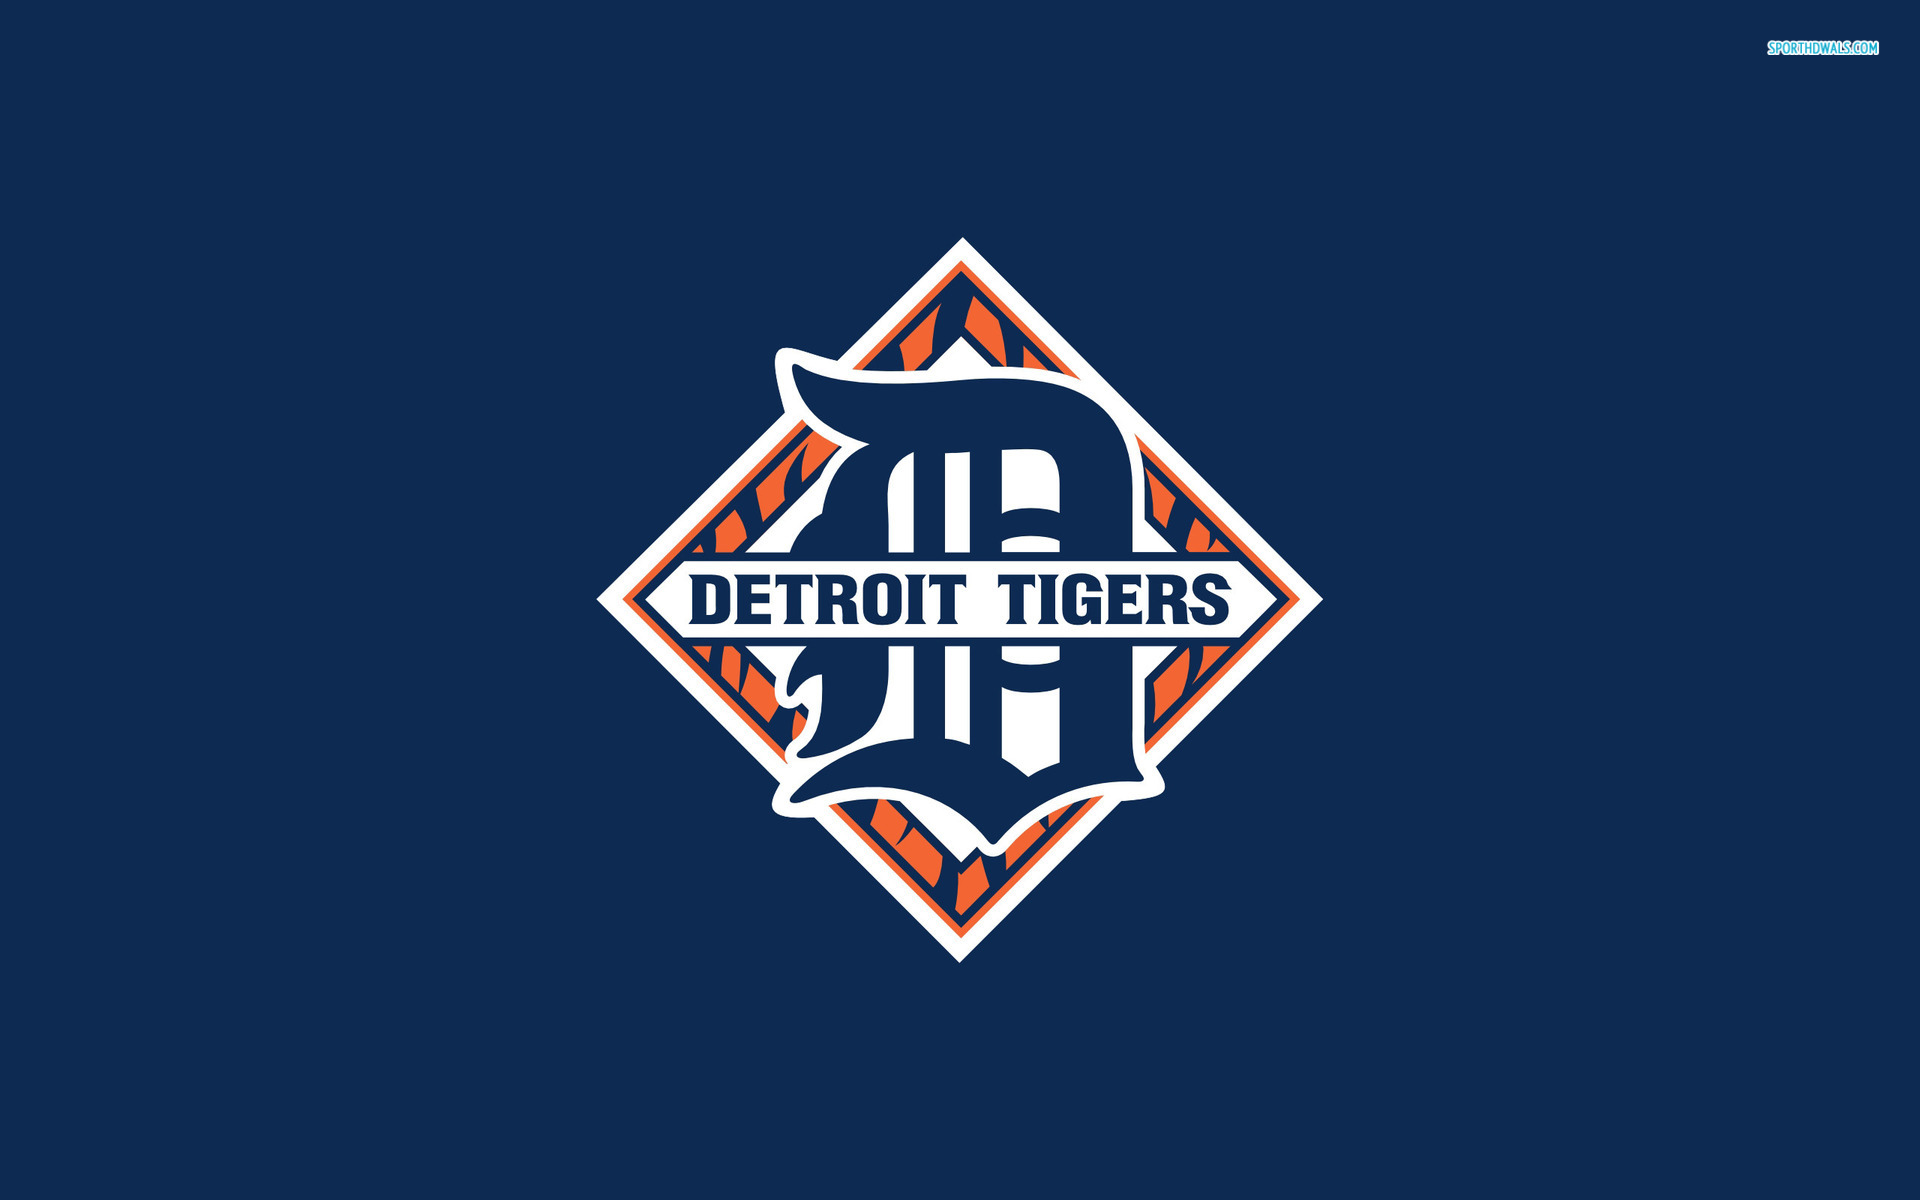 Detroit Tigers widescreen for desktop